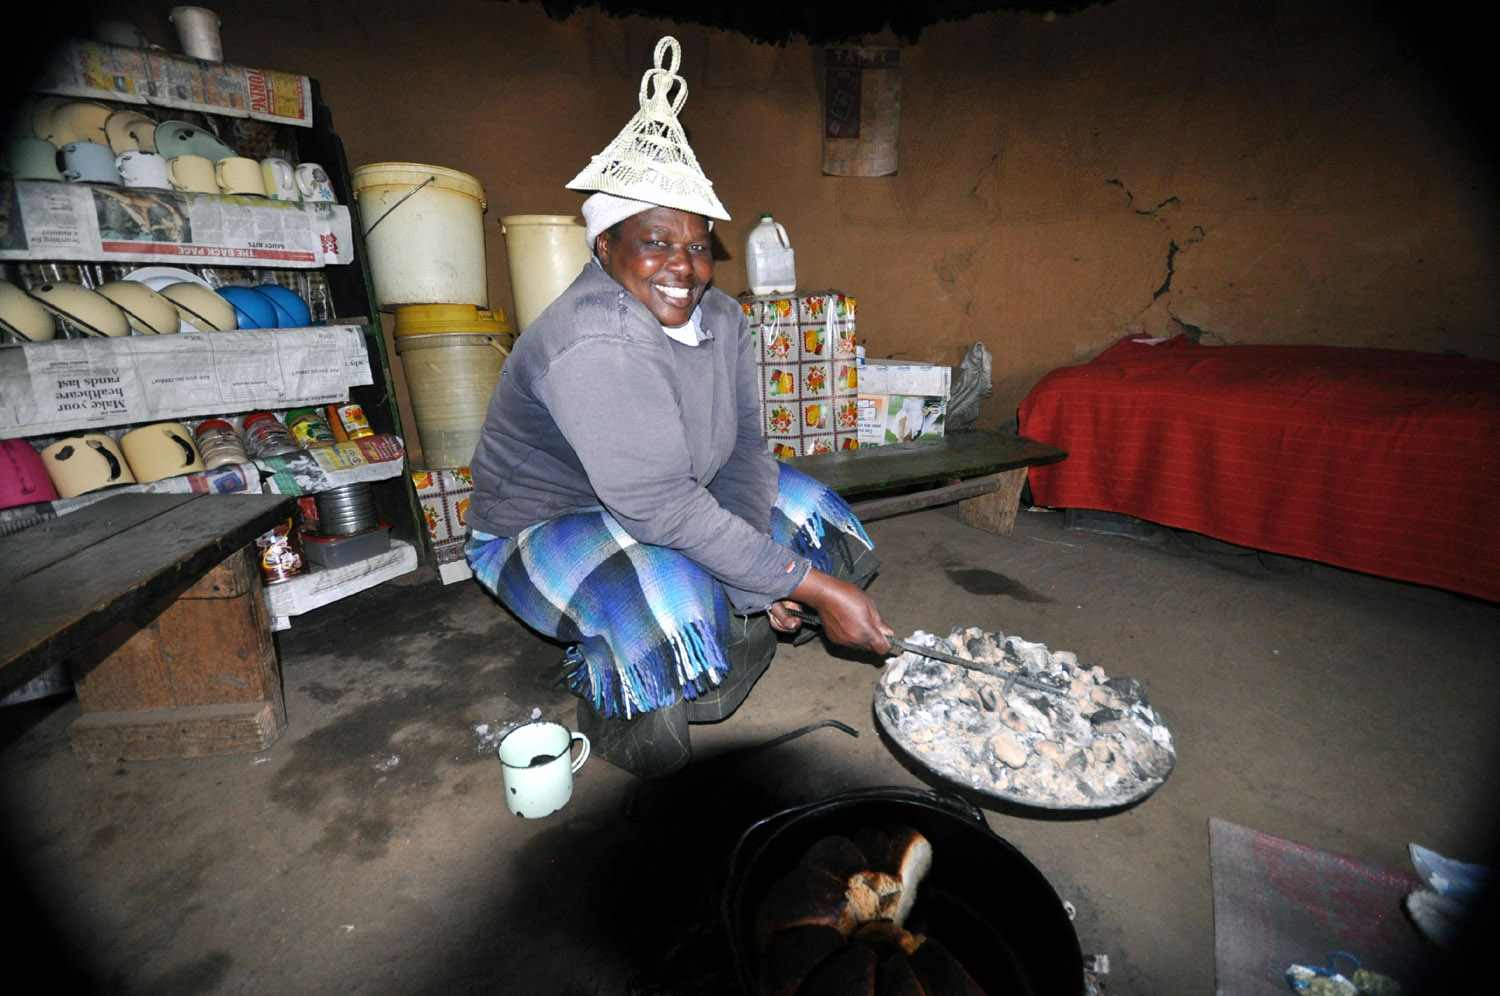 Basotho woman in Lesotho cooking bread over the fire